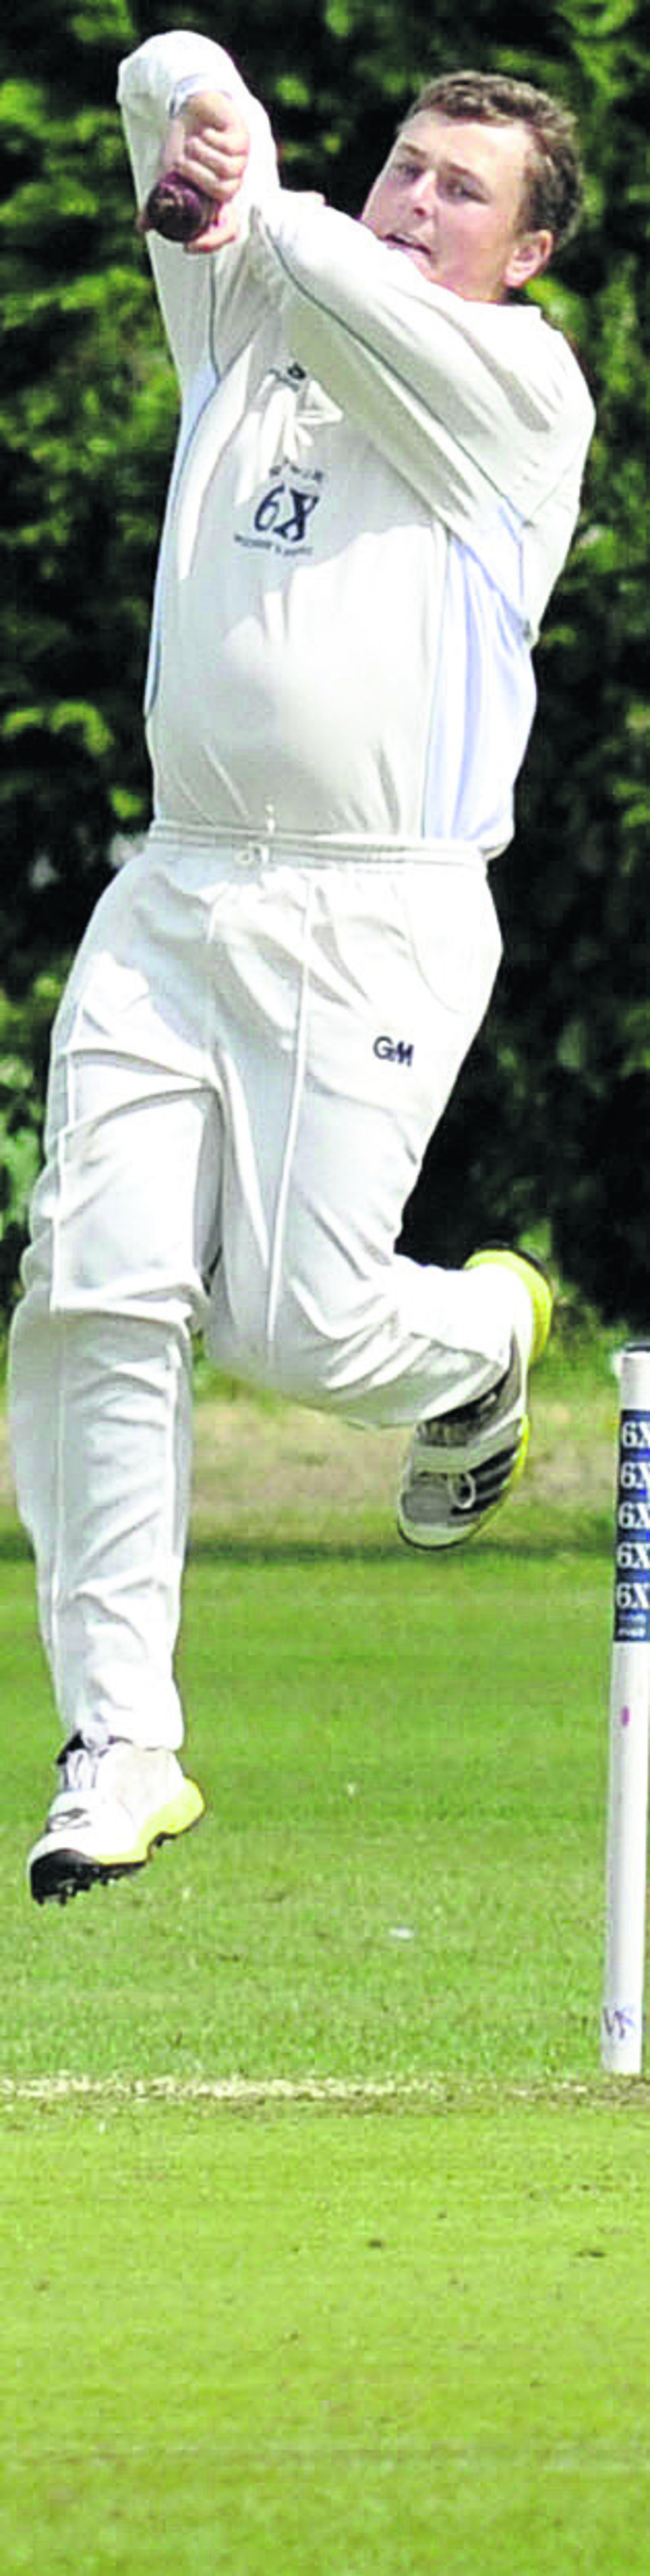 Joe King bagged three wickets for Corsham during Saturday's defeat